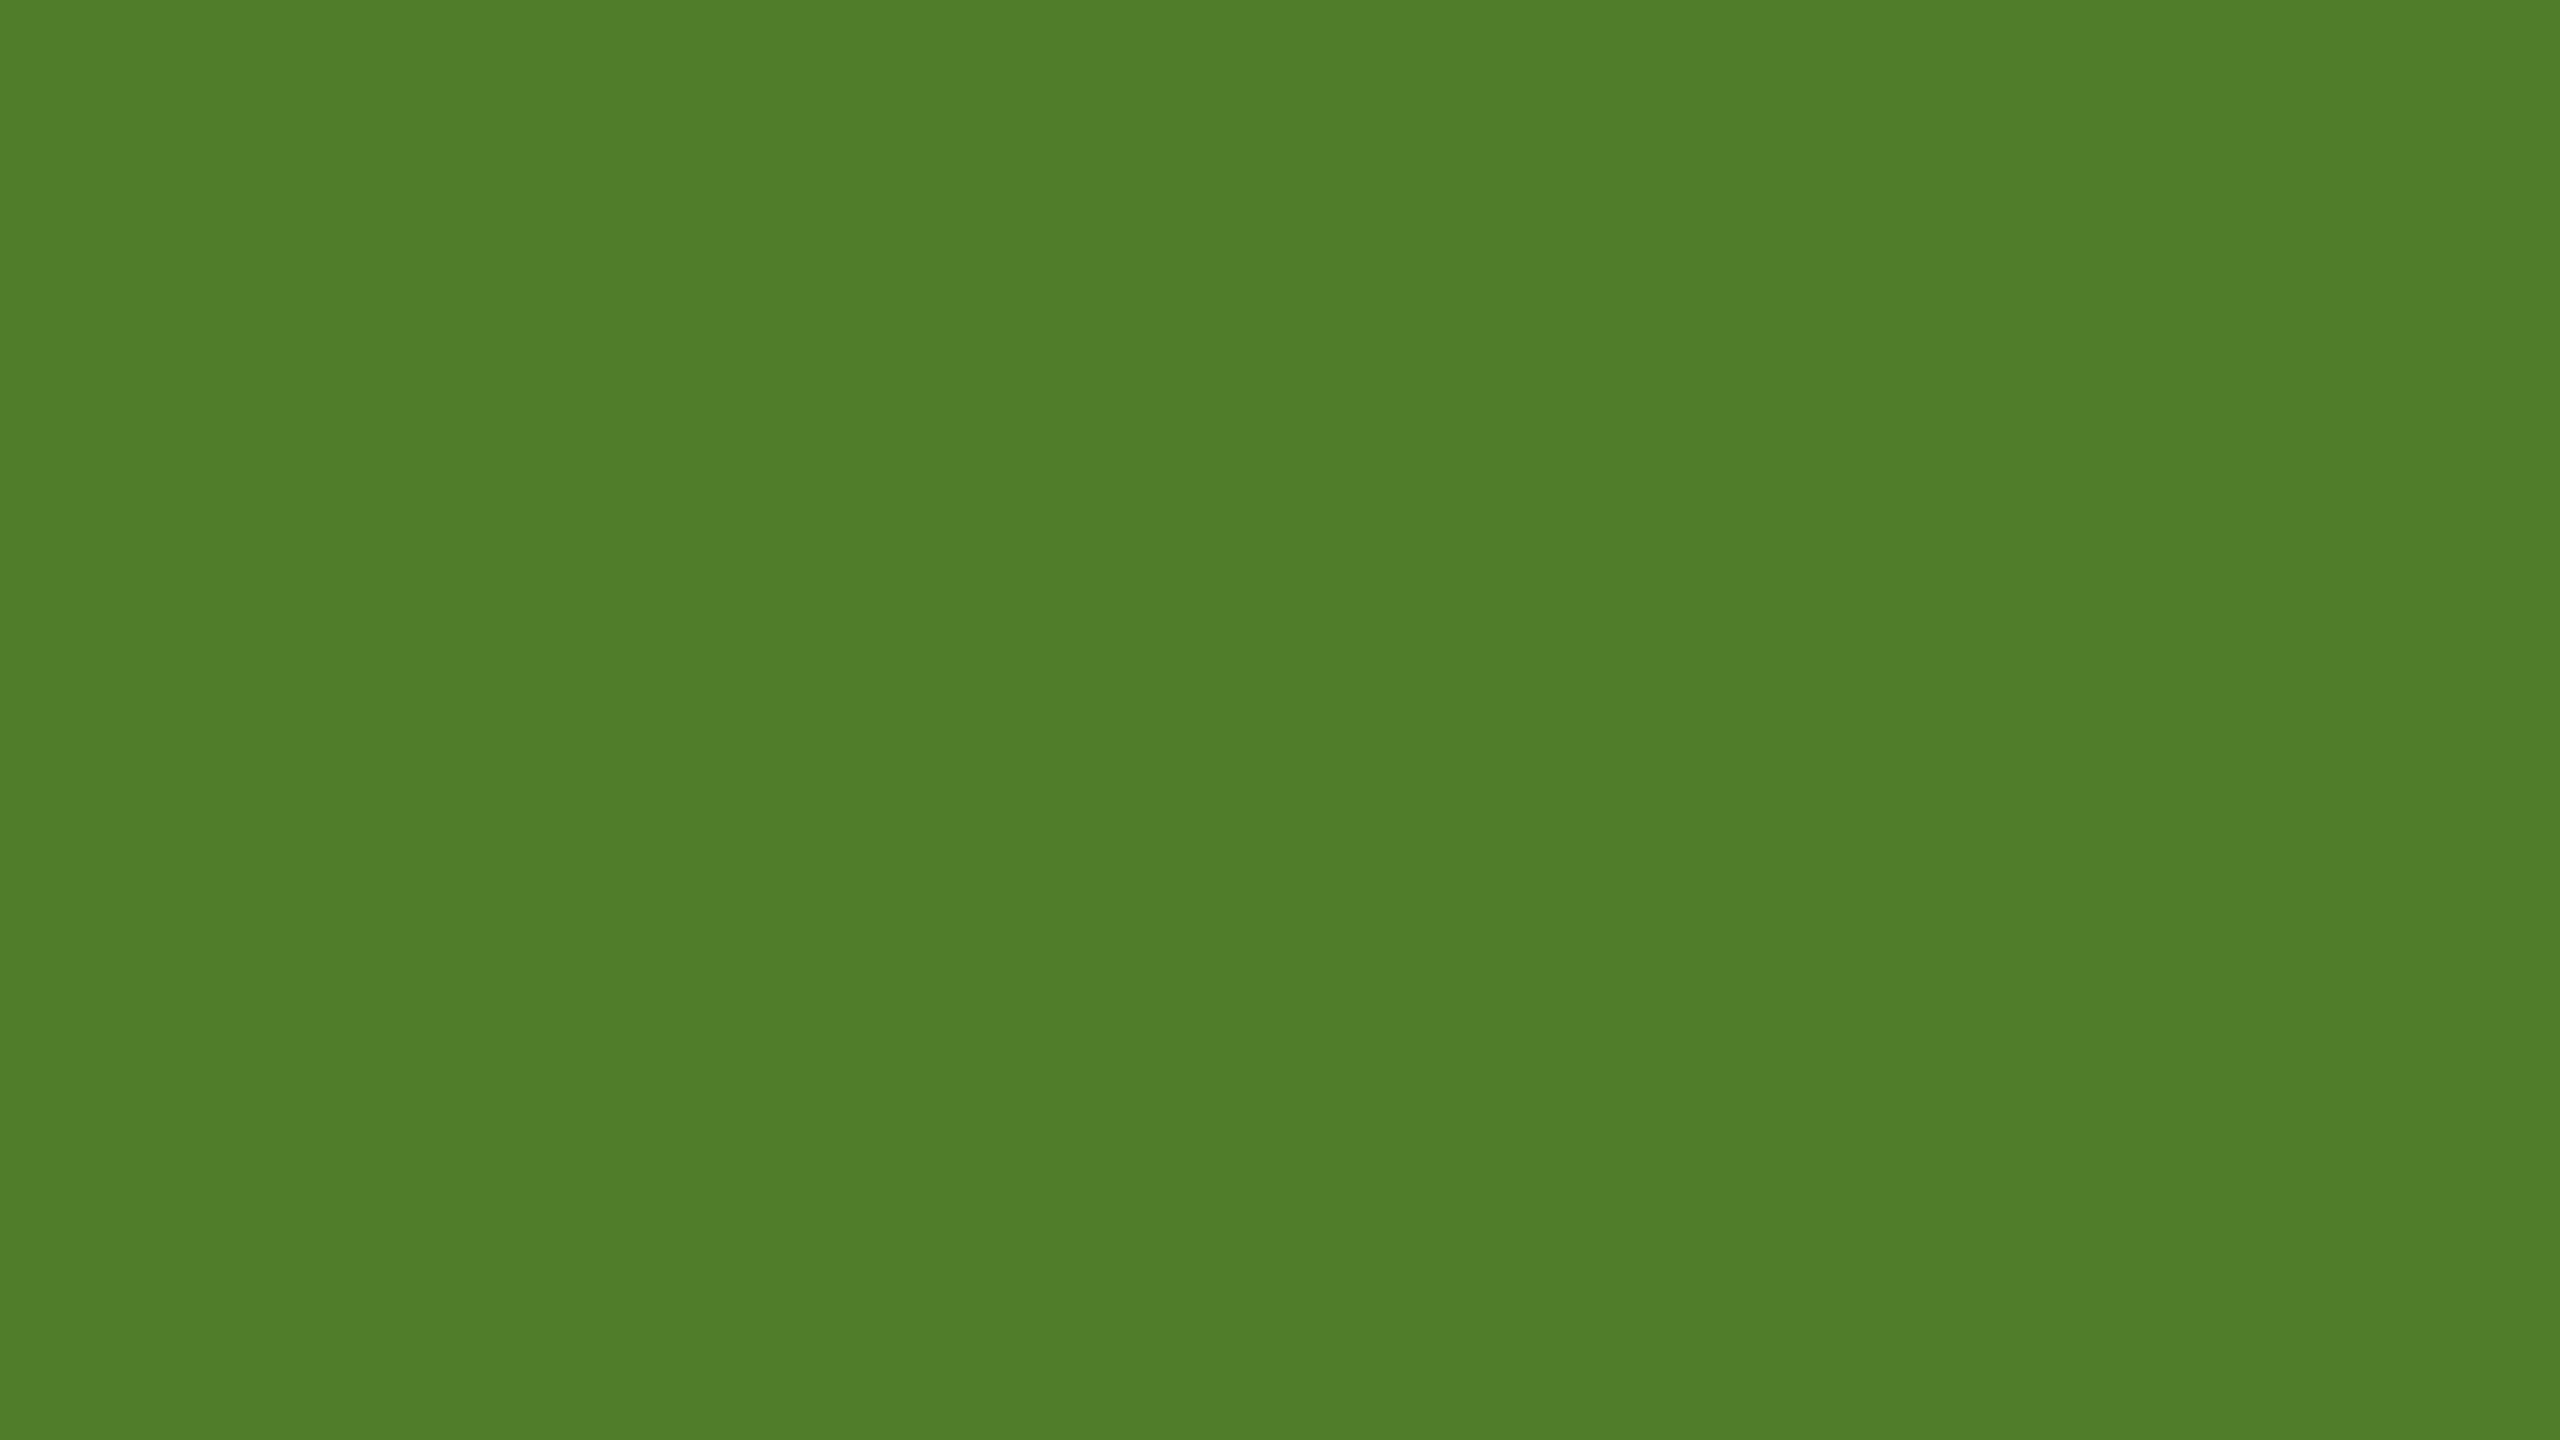 2560x1440 Sap Green Solid Color Background